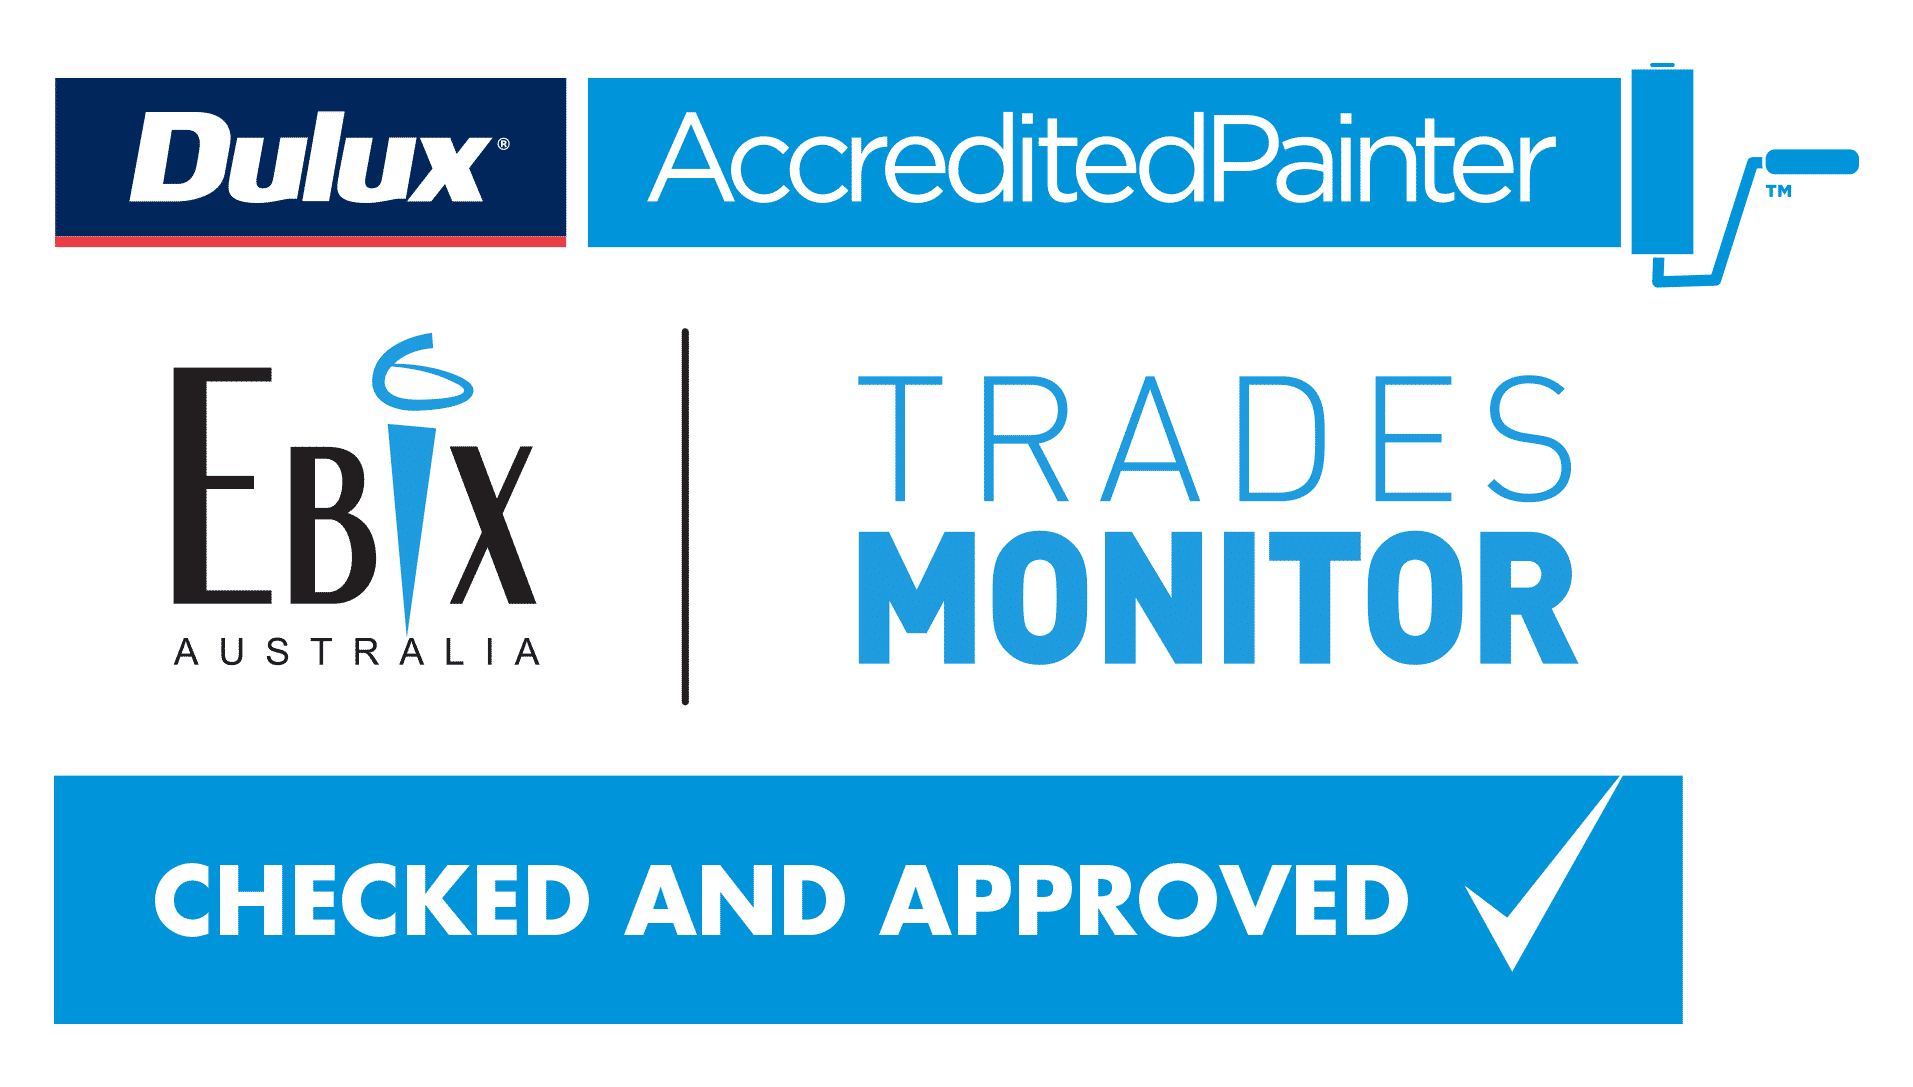 Ebix Trades Monitor - Wilko Painting - Award Winning Painters Brisbane